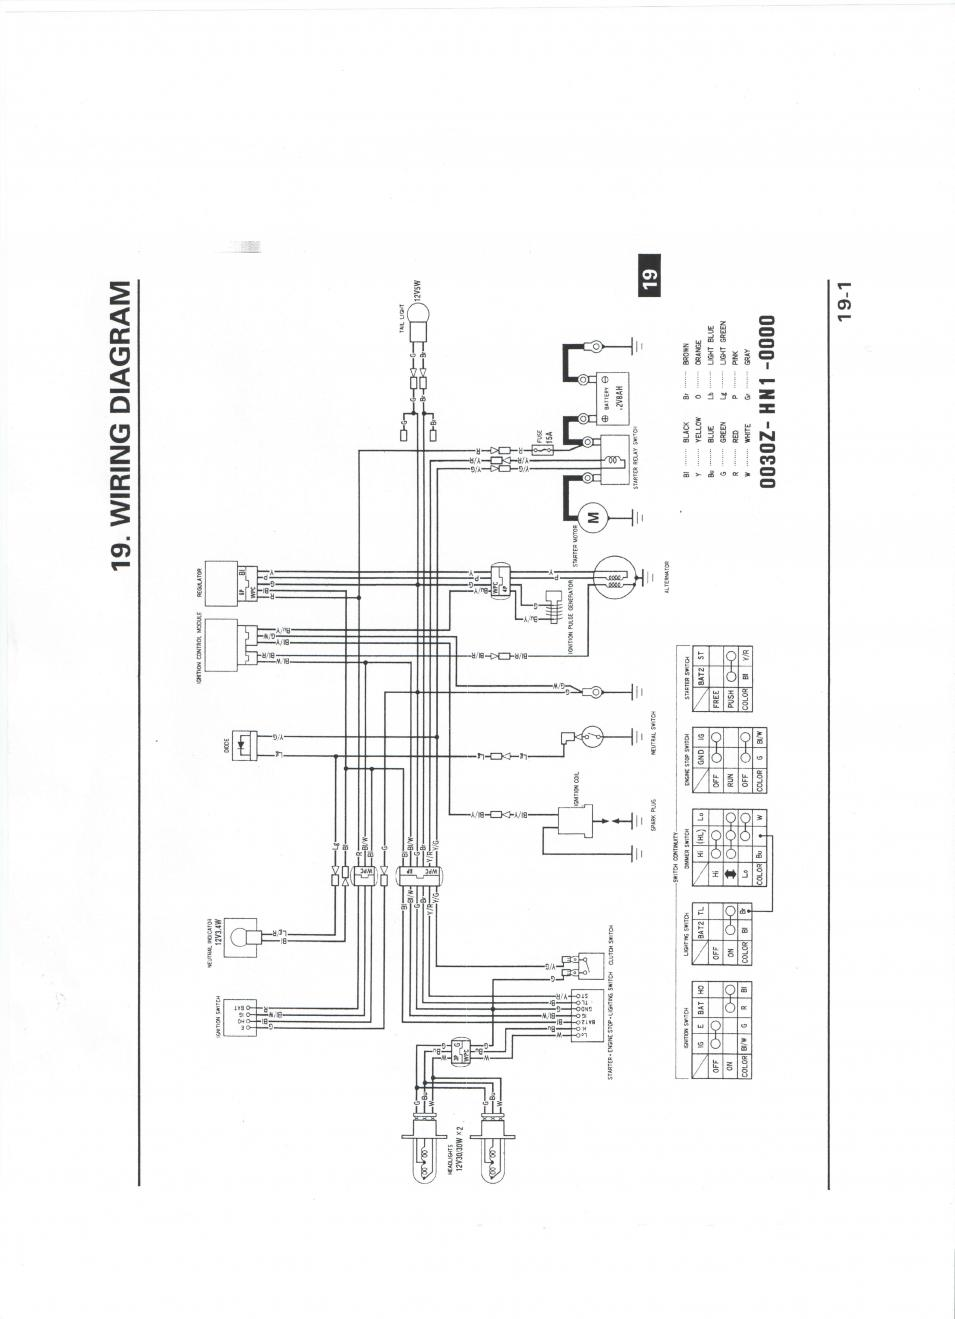 hight resolution of related with 400 sel wire harness ford five hundred fuse box